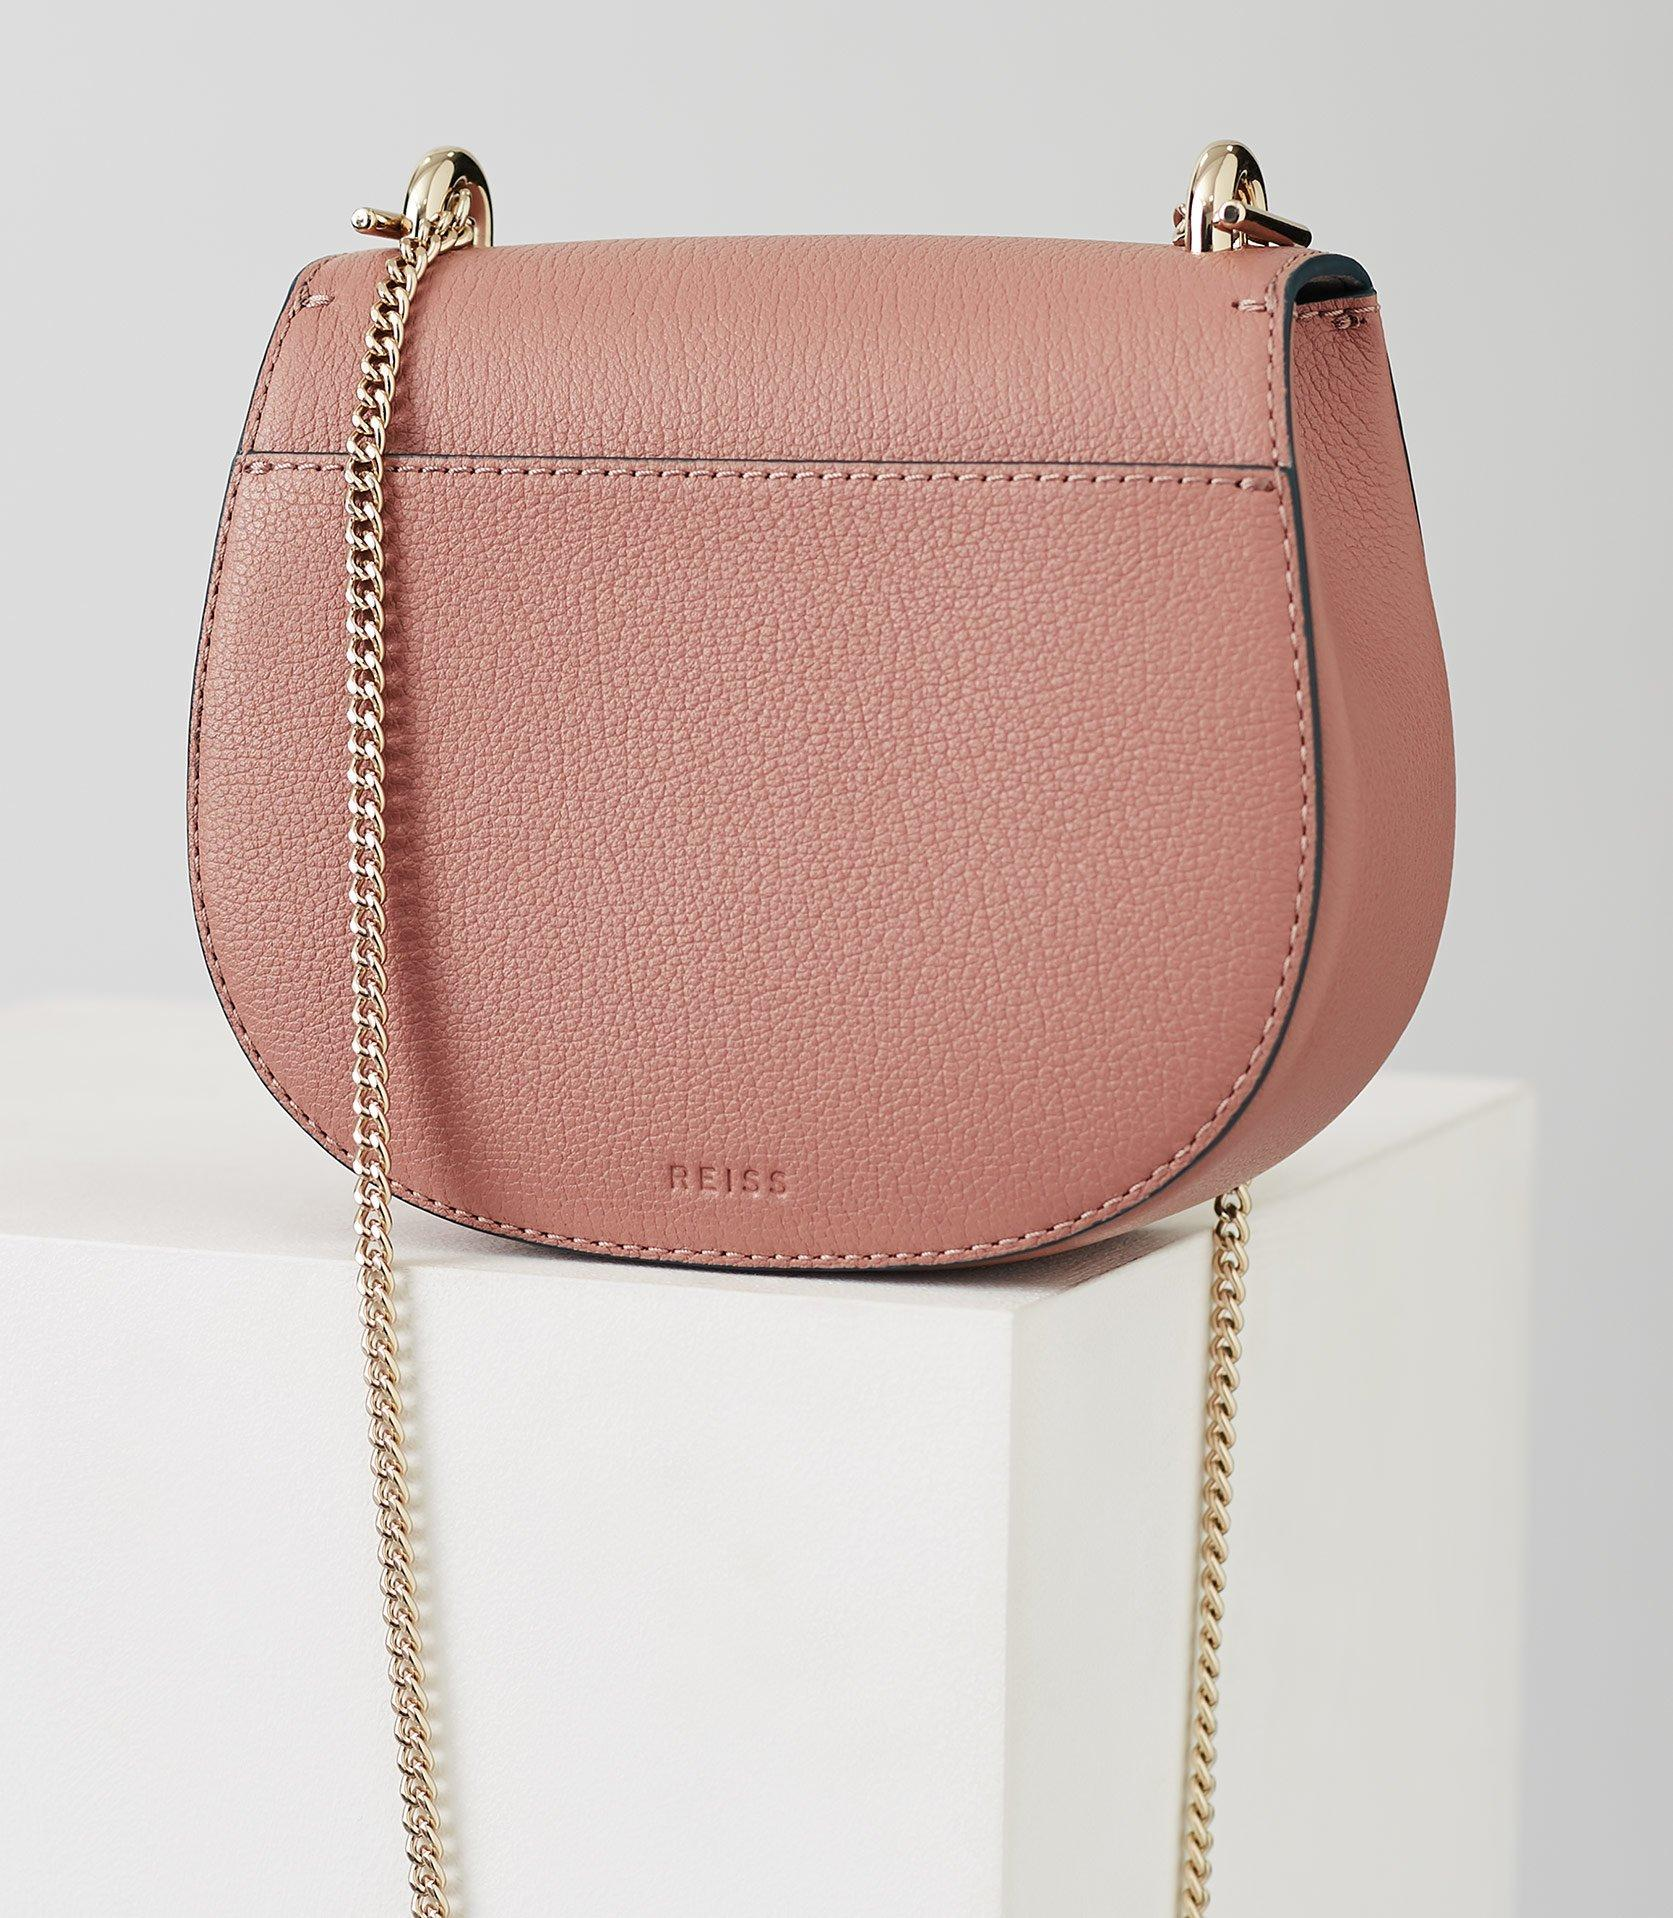 a5ecc58c9771 Reiss - Pink Maltby Mini - Mini Cross-body Bag - Lyst. View fullscreen